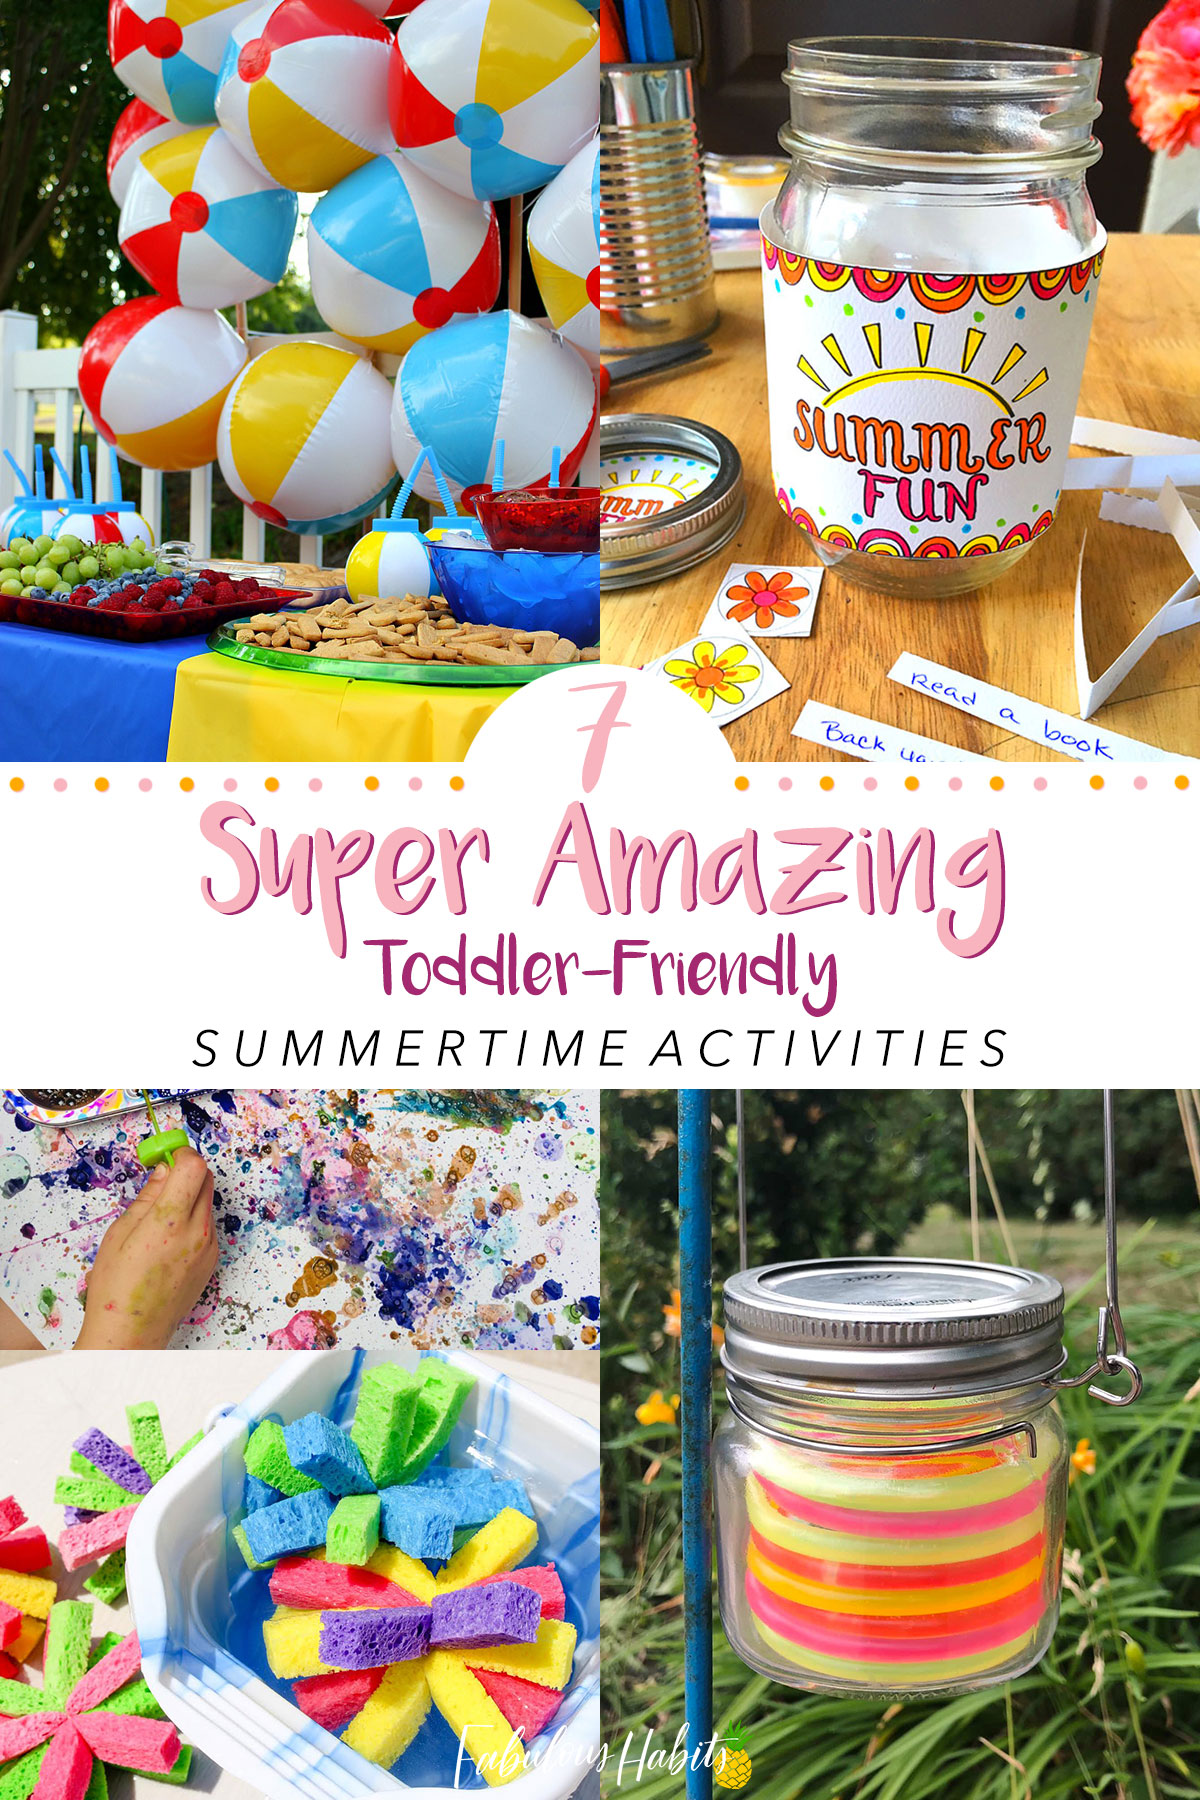 Rounded-up 7 of the most popular summer activities for toddlers. Now, let's get outdoors and play! #summeractivity